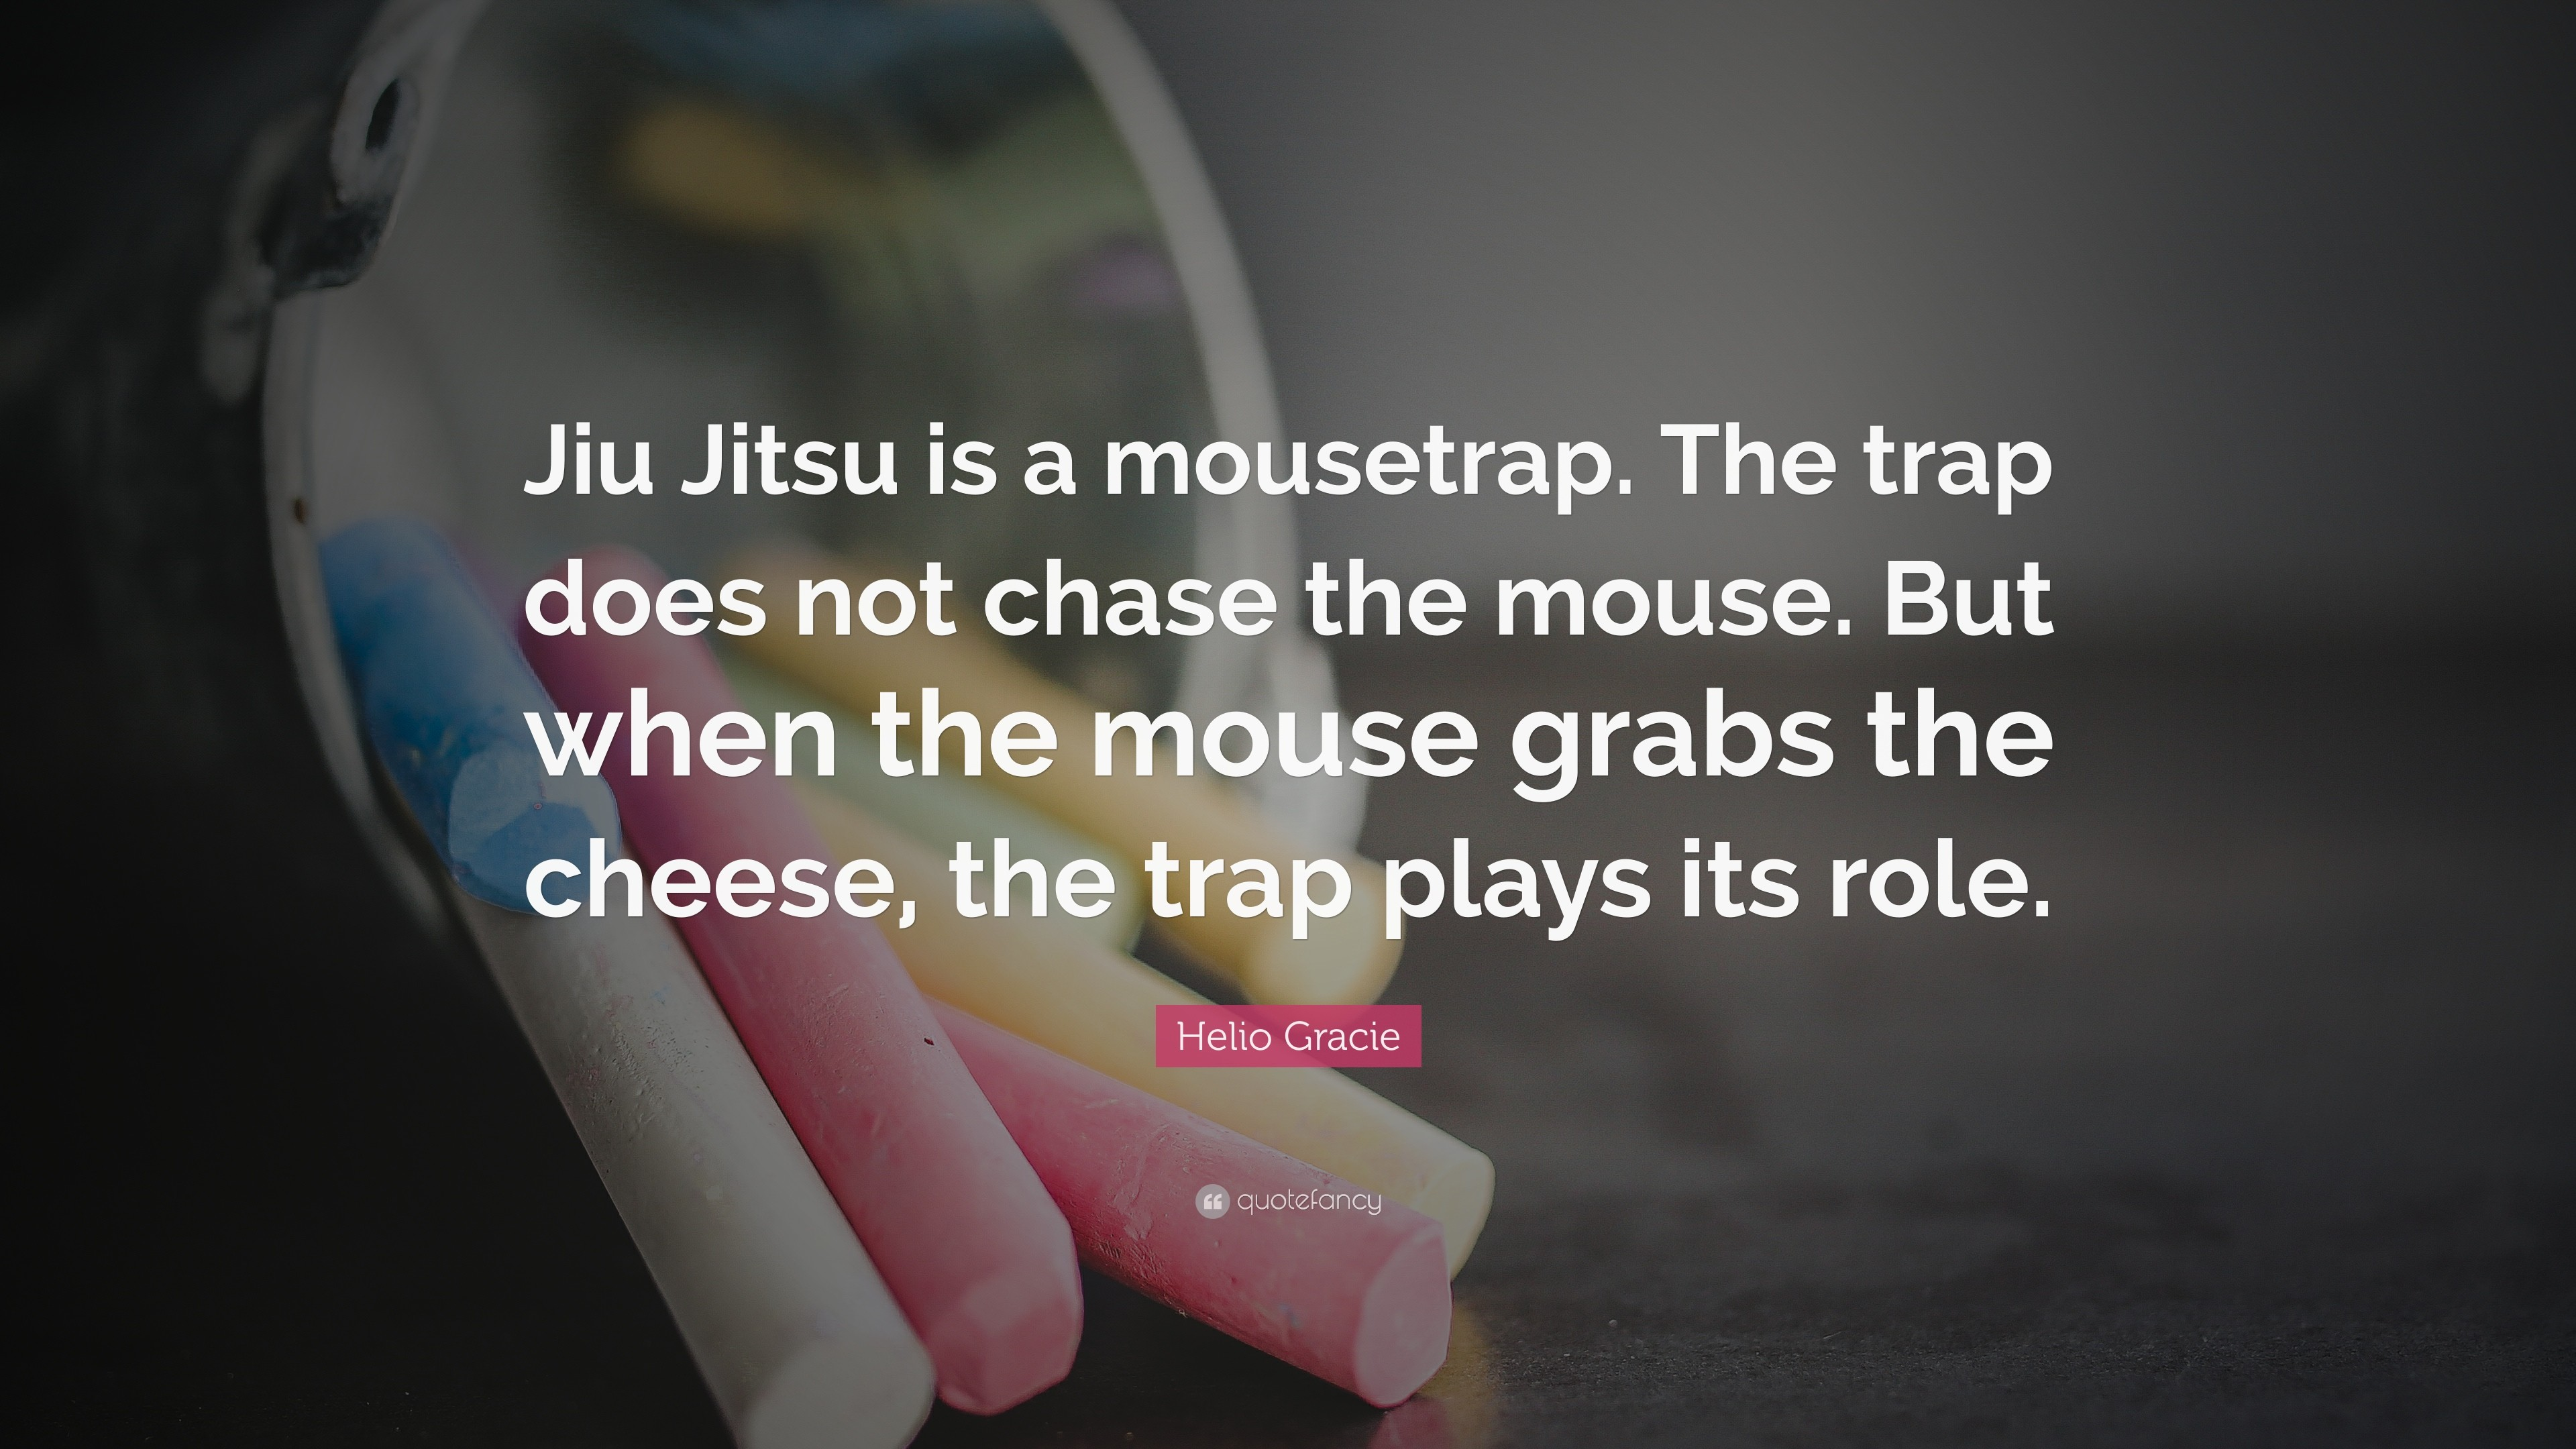 Gracie jiu jitsu wallpaper 78 images 3840x2160 helio gracie quote jiu jitsu is a mousetrap the trap does not voltagebd Image collections